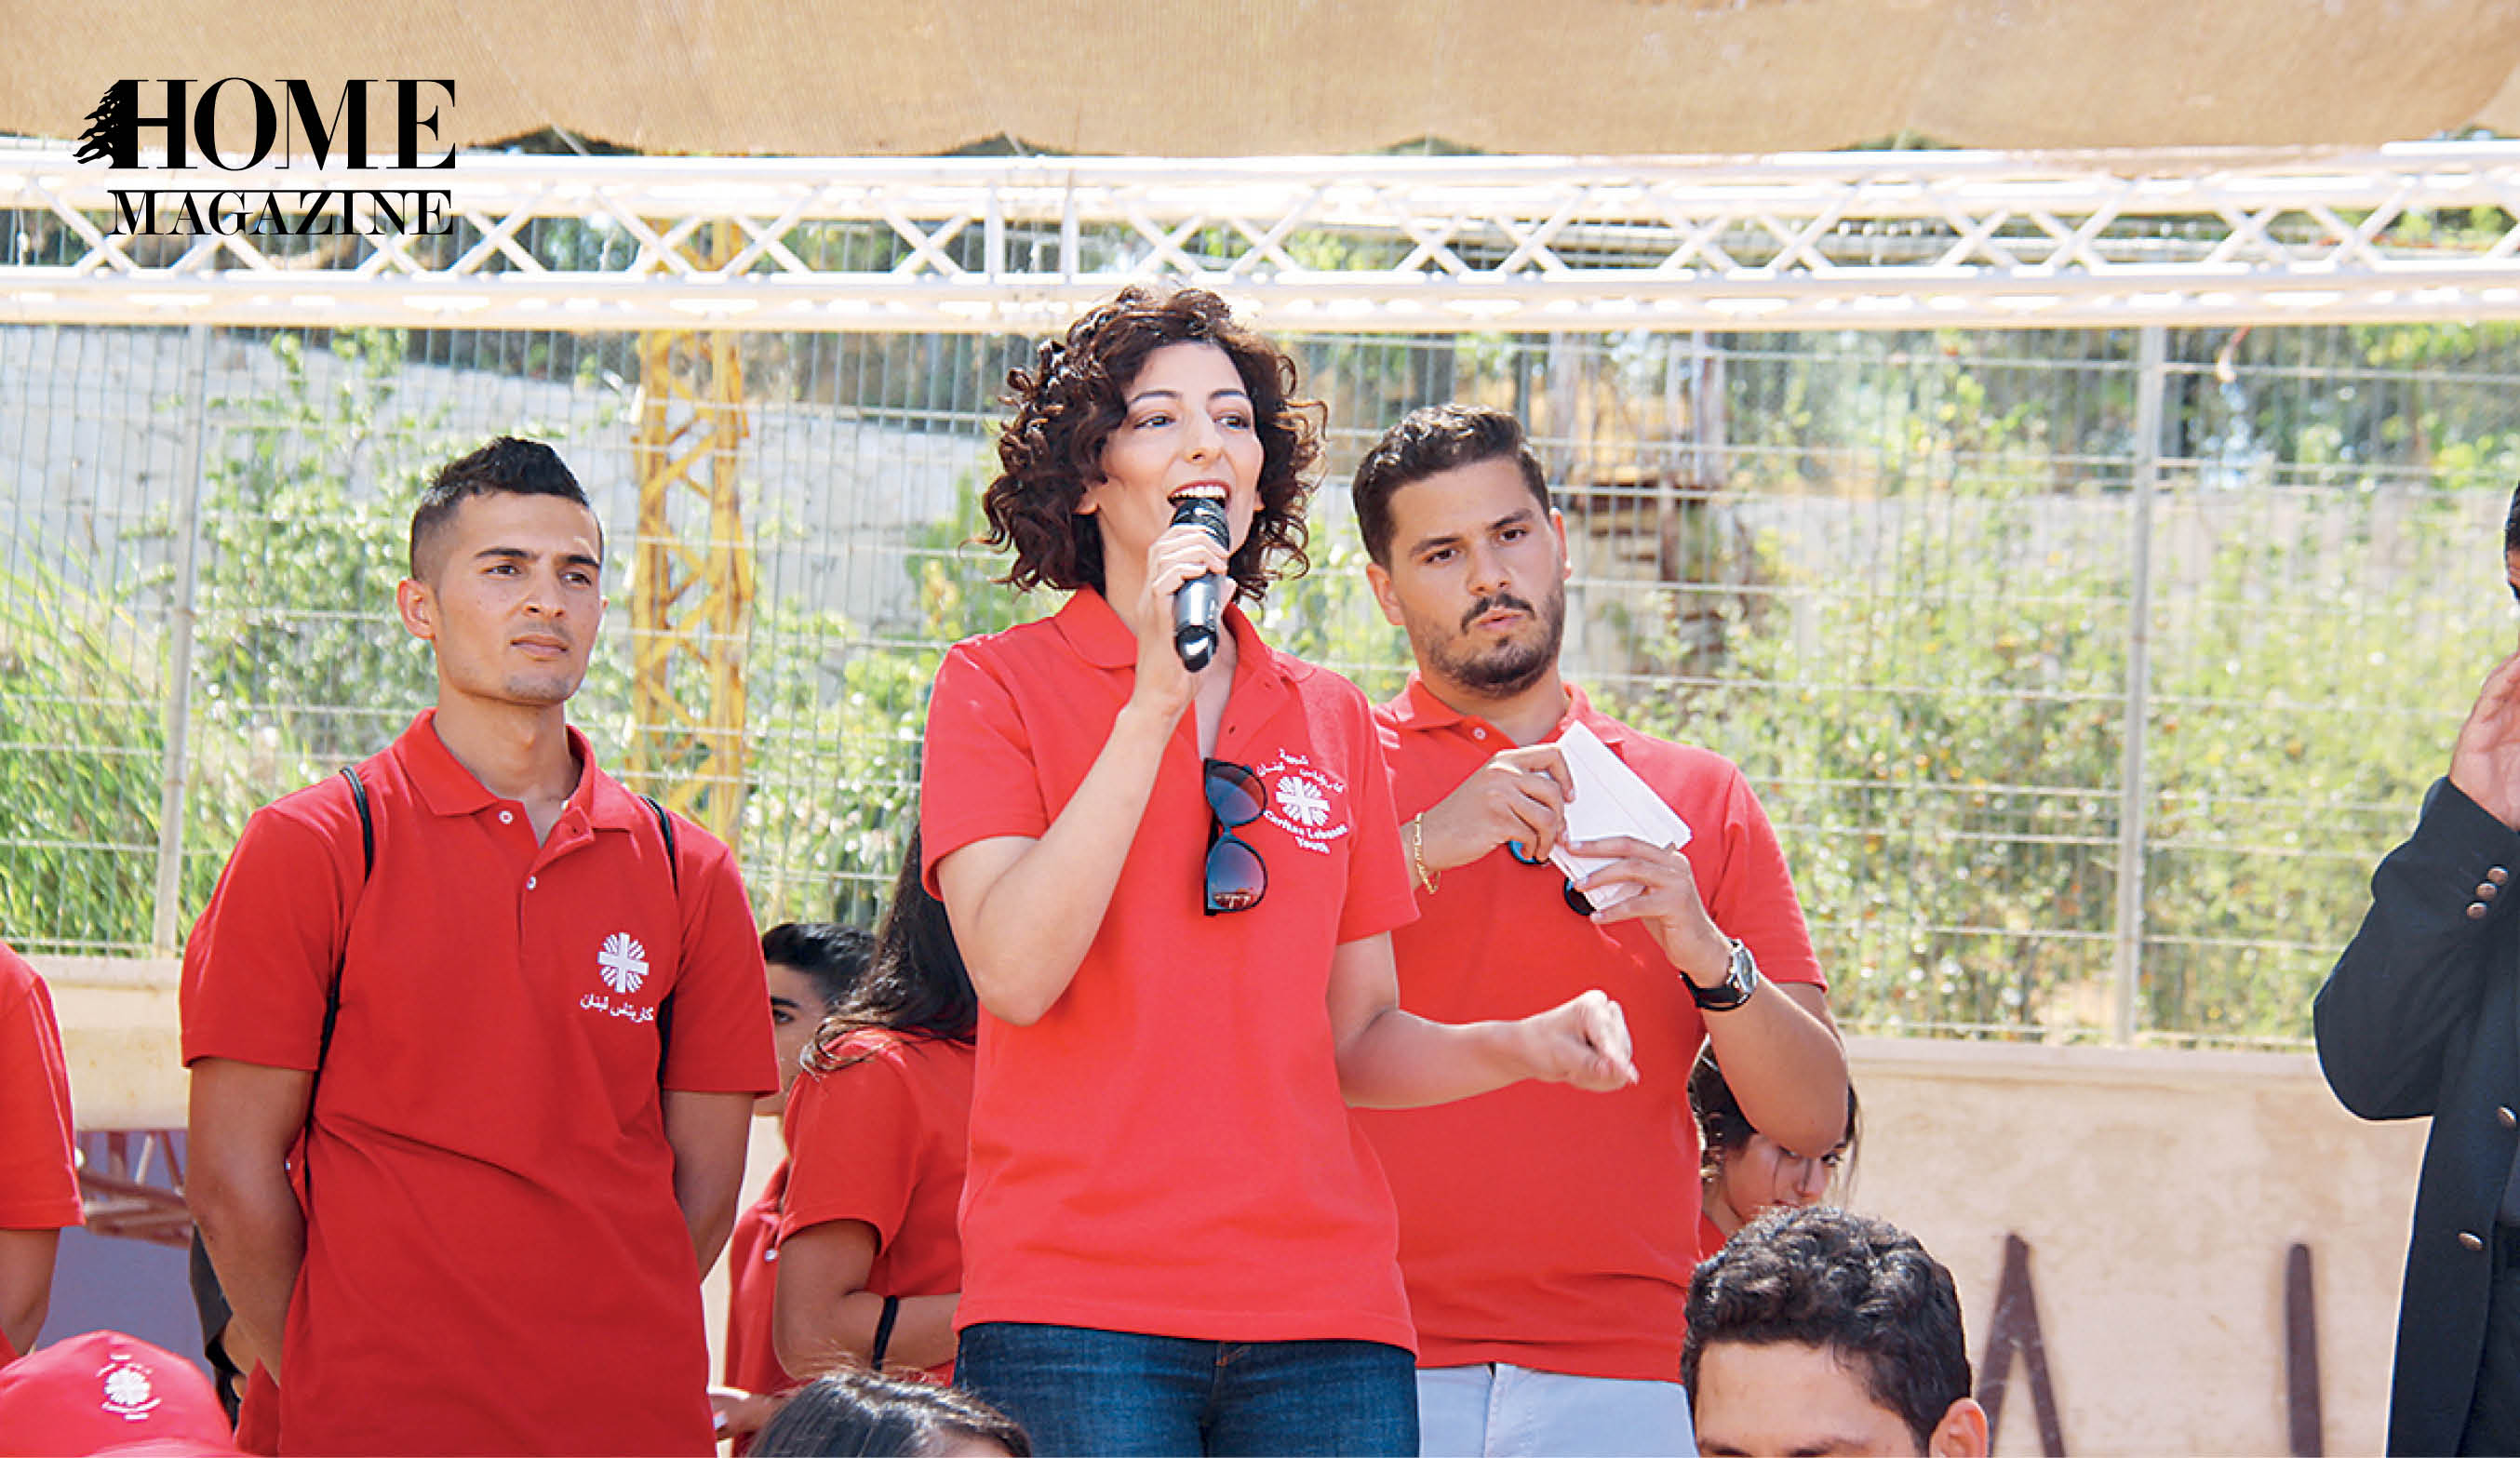 Woman in red tshirt speaking on microphone with two men in red tshirts behind